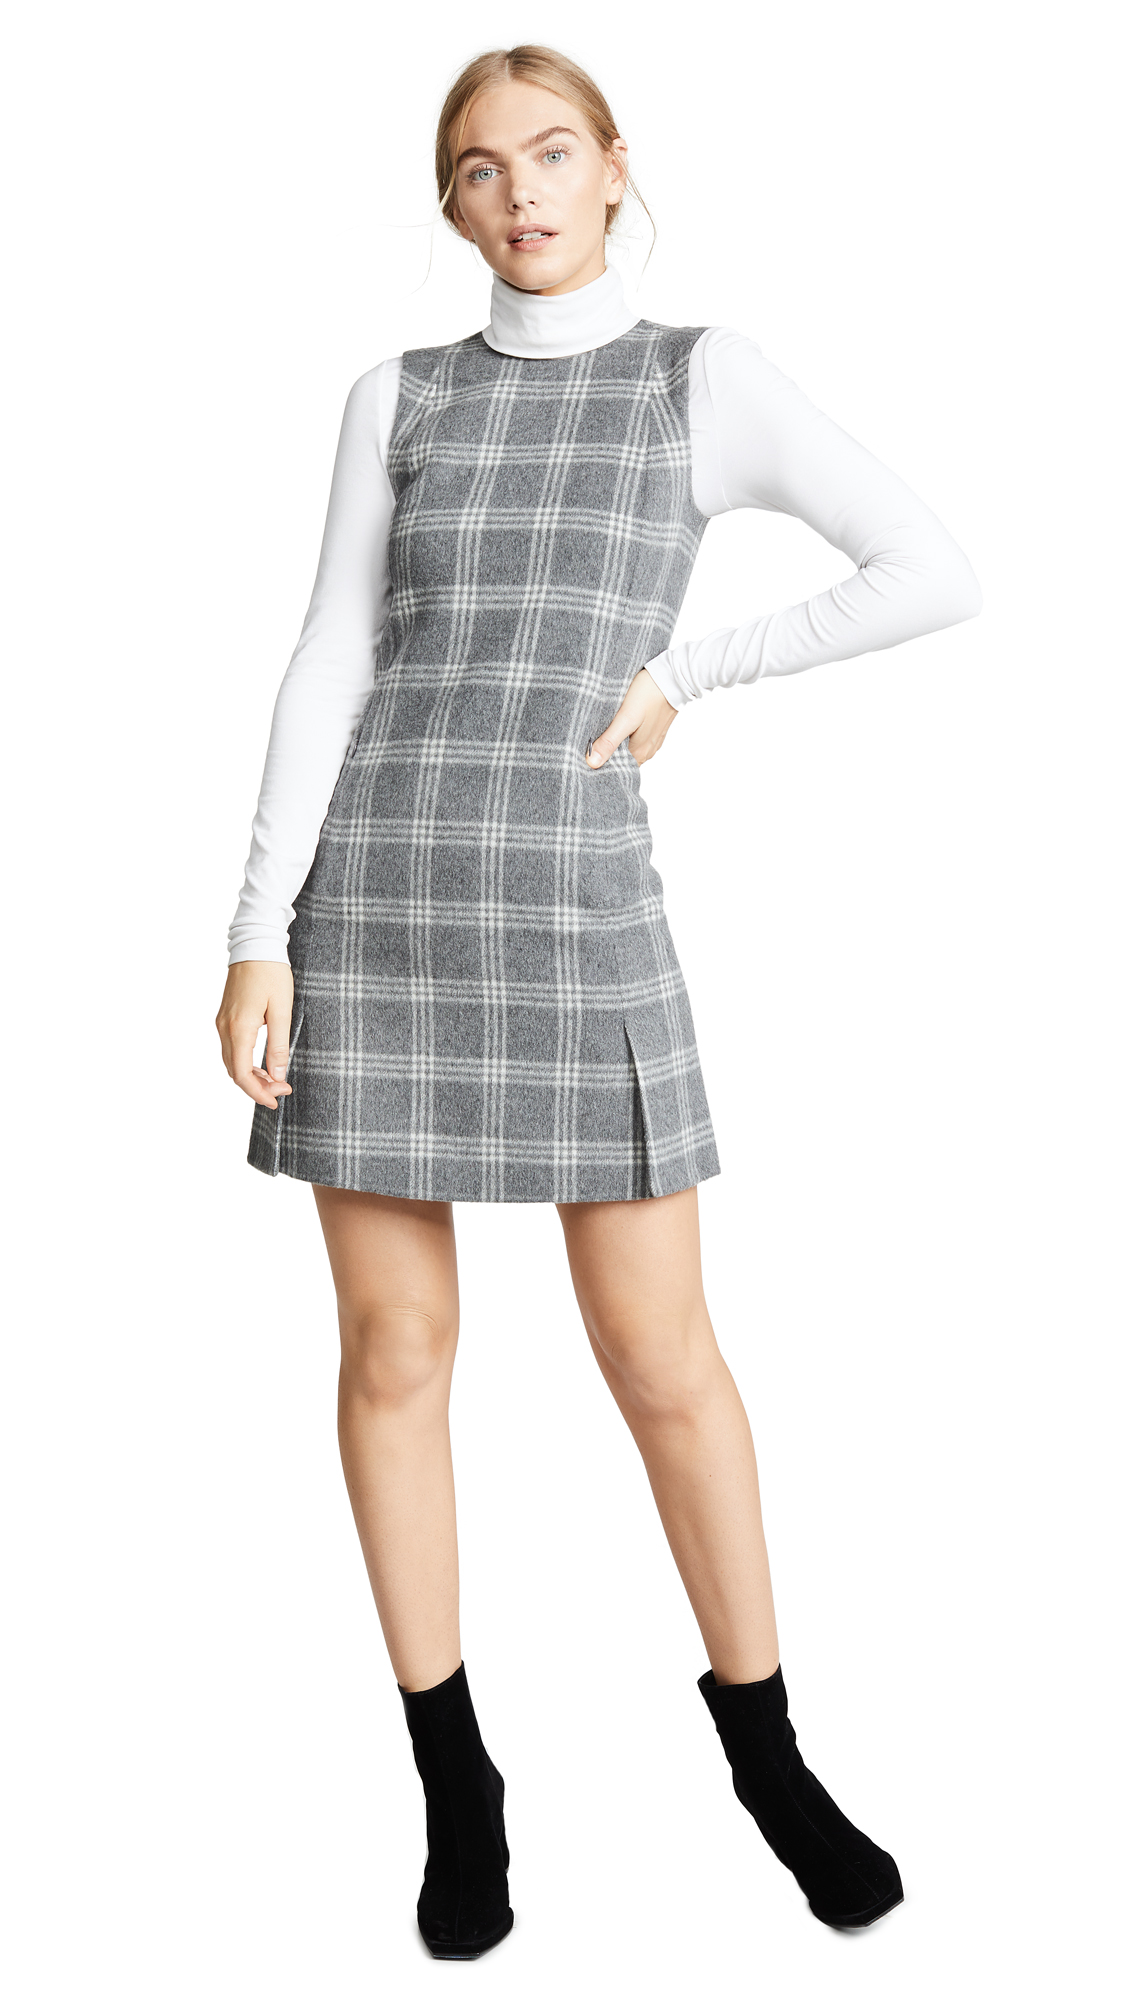 Theory Vent Front Shift Dress - Charcoal Melange